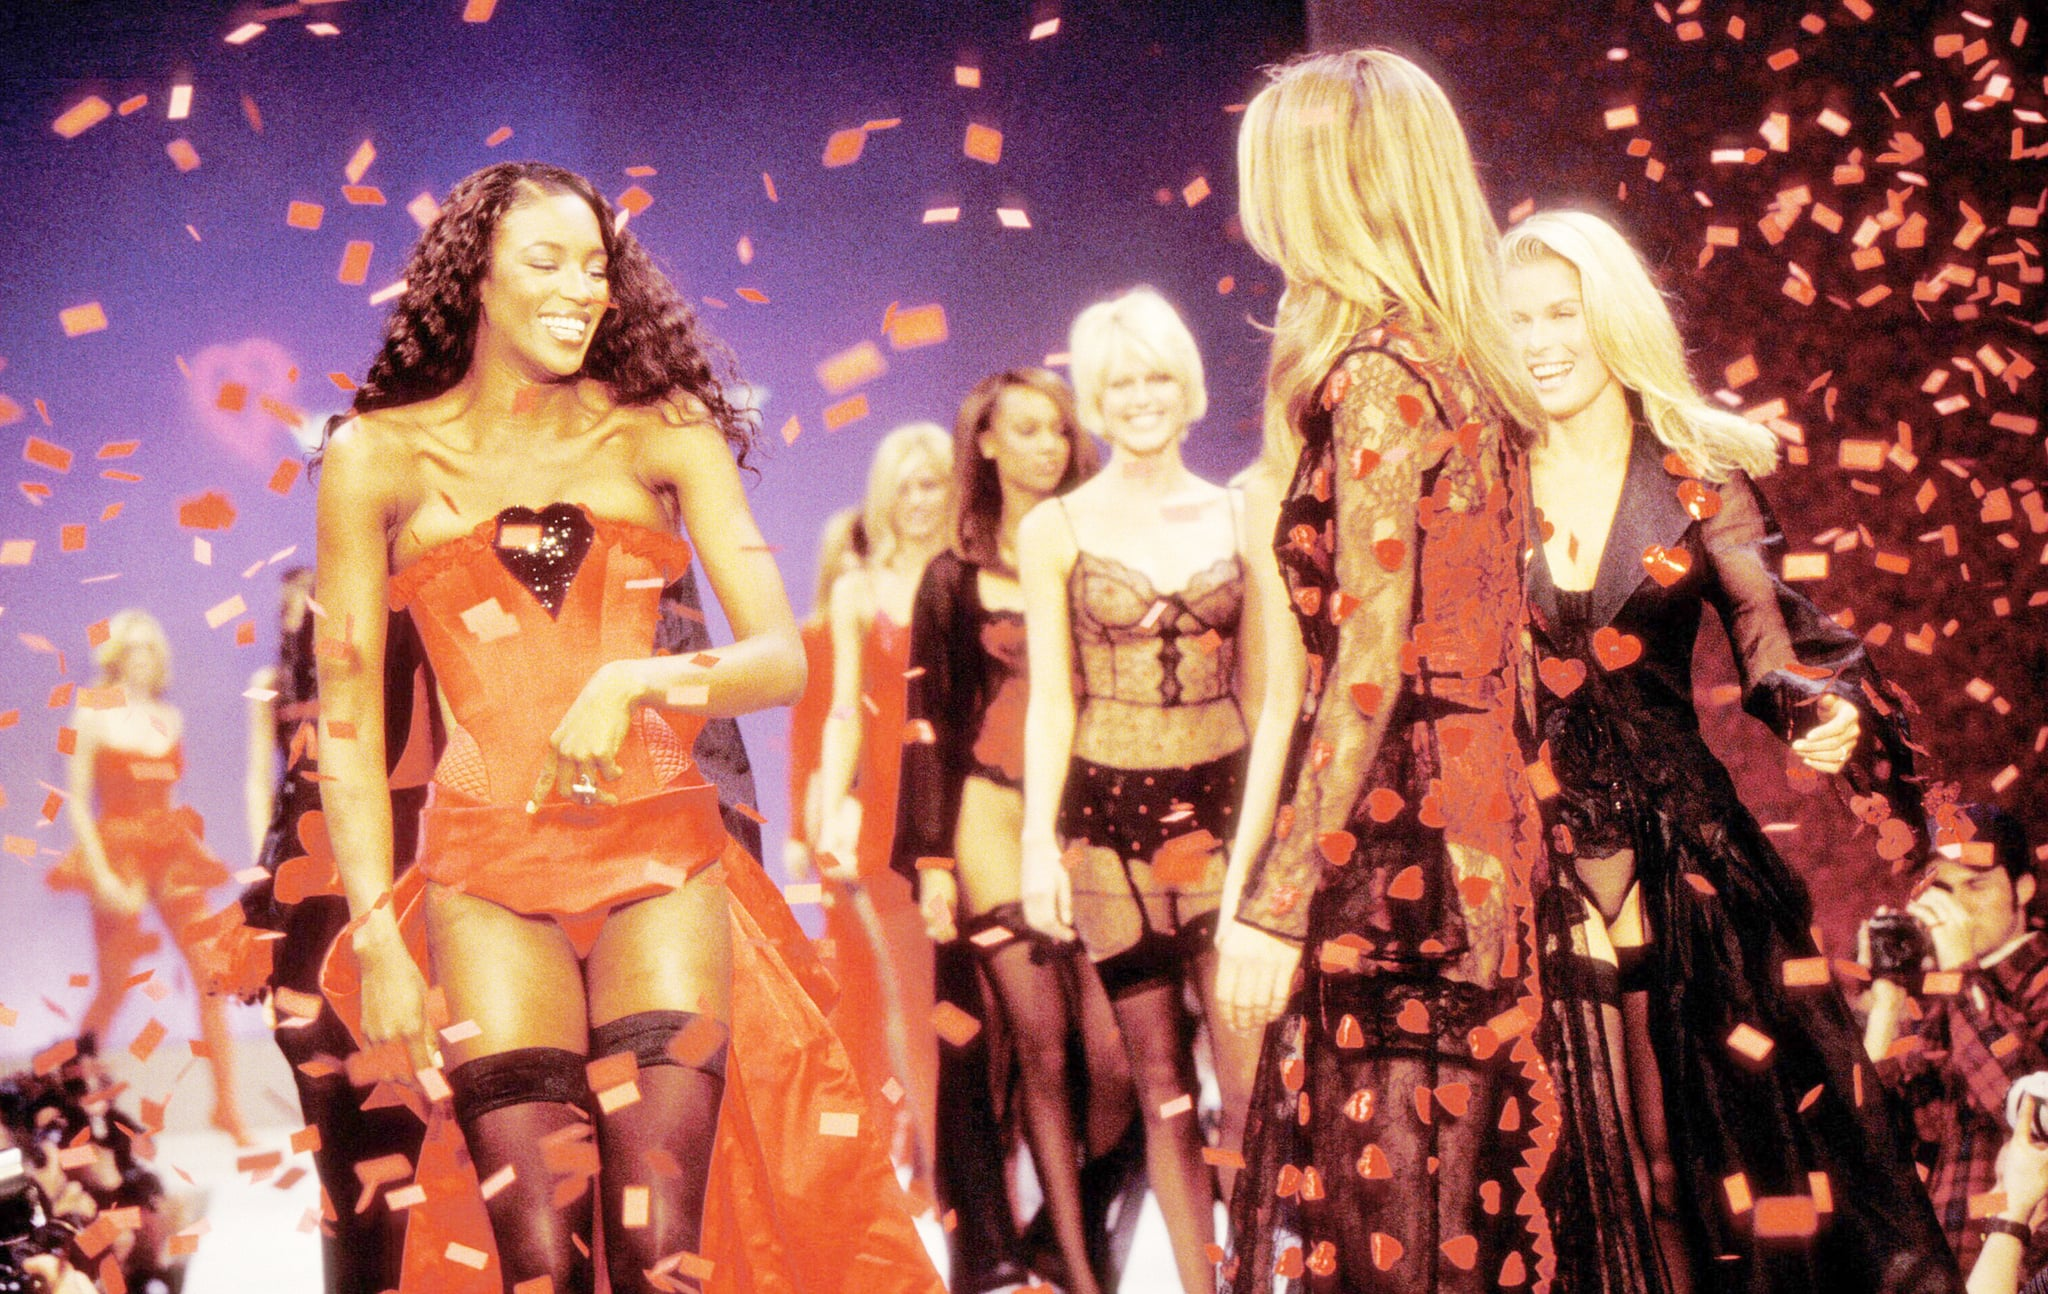 Naomi Campbell and others made their way through the confetti during the 1997 runway finale.